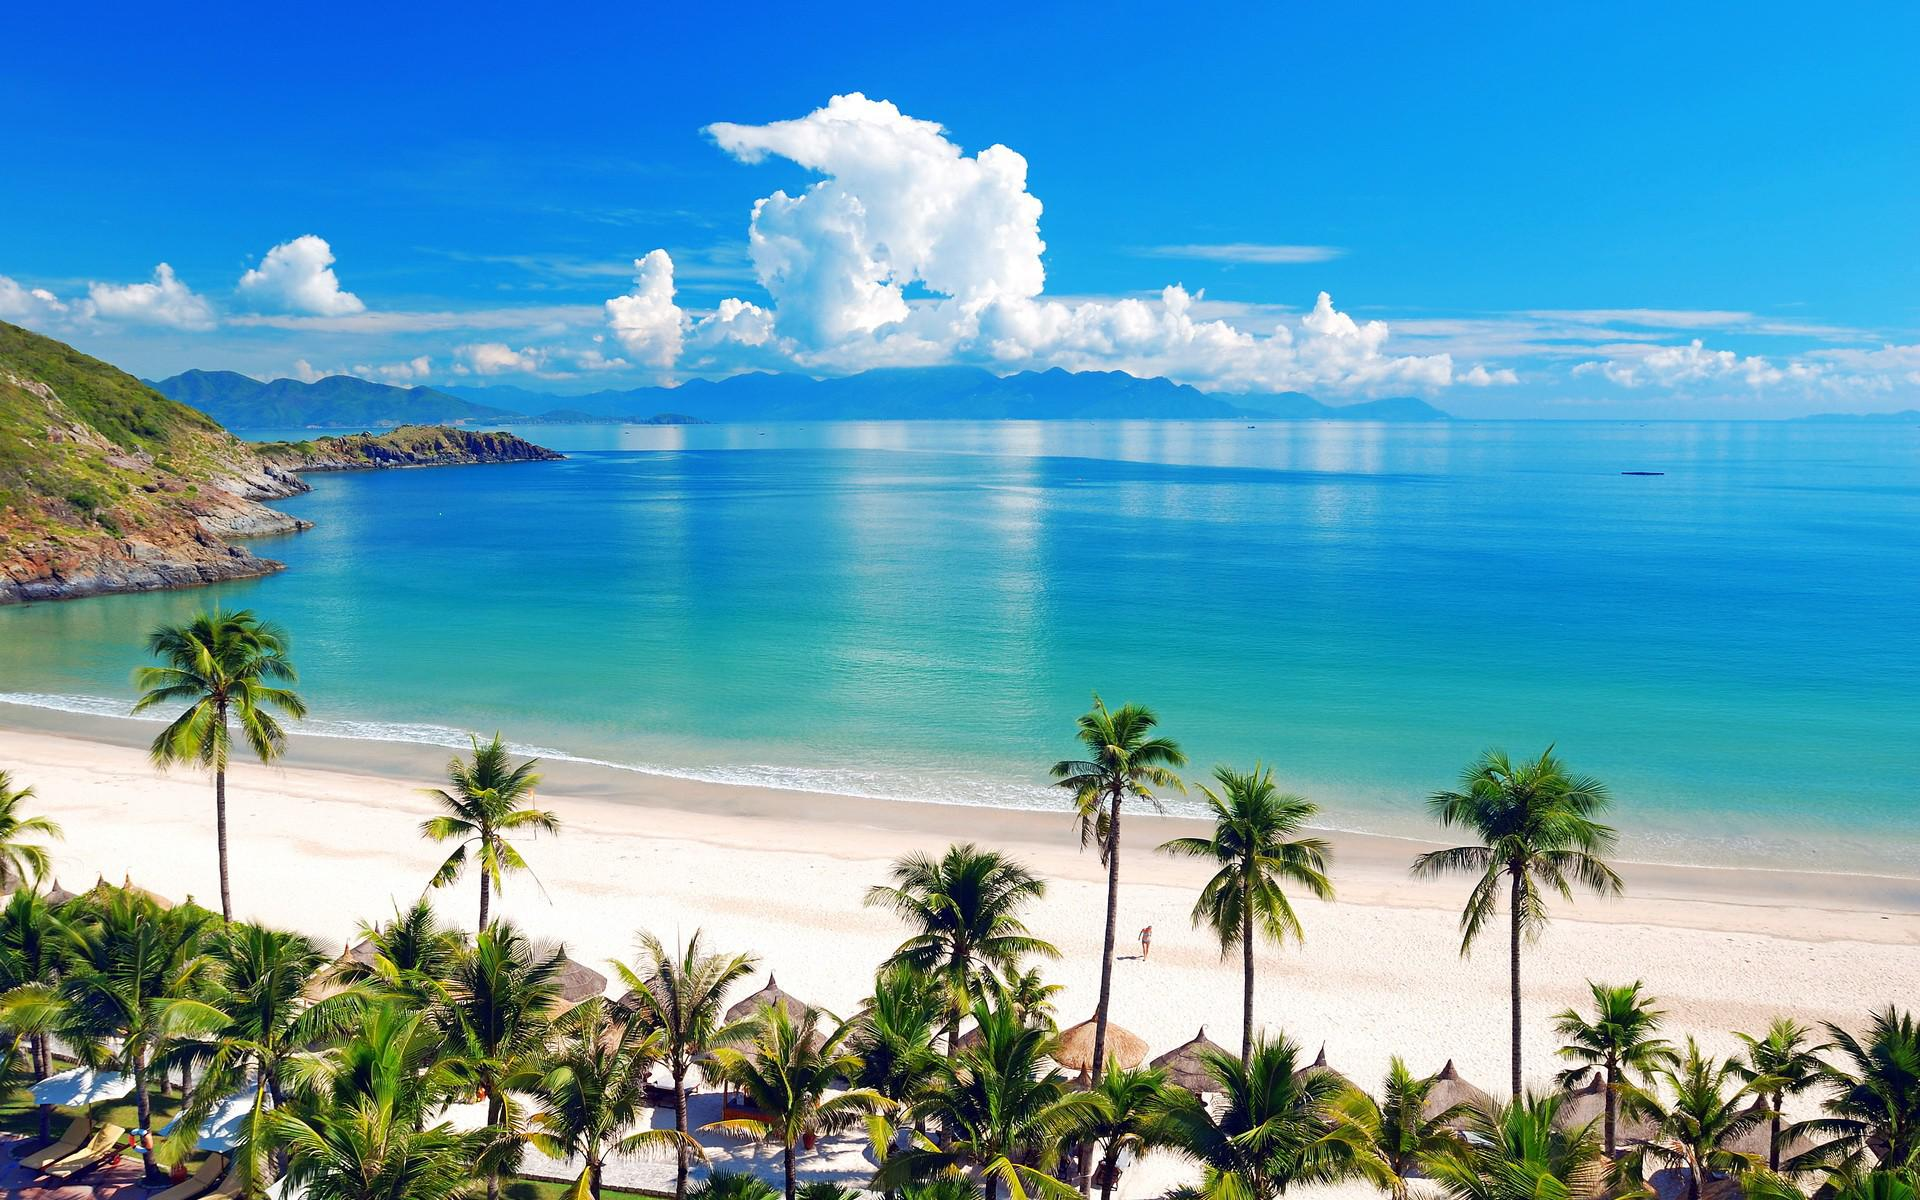 Nha-Trang-Beach-beautiful-beaches-and-island-nha-trang